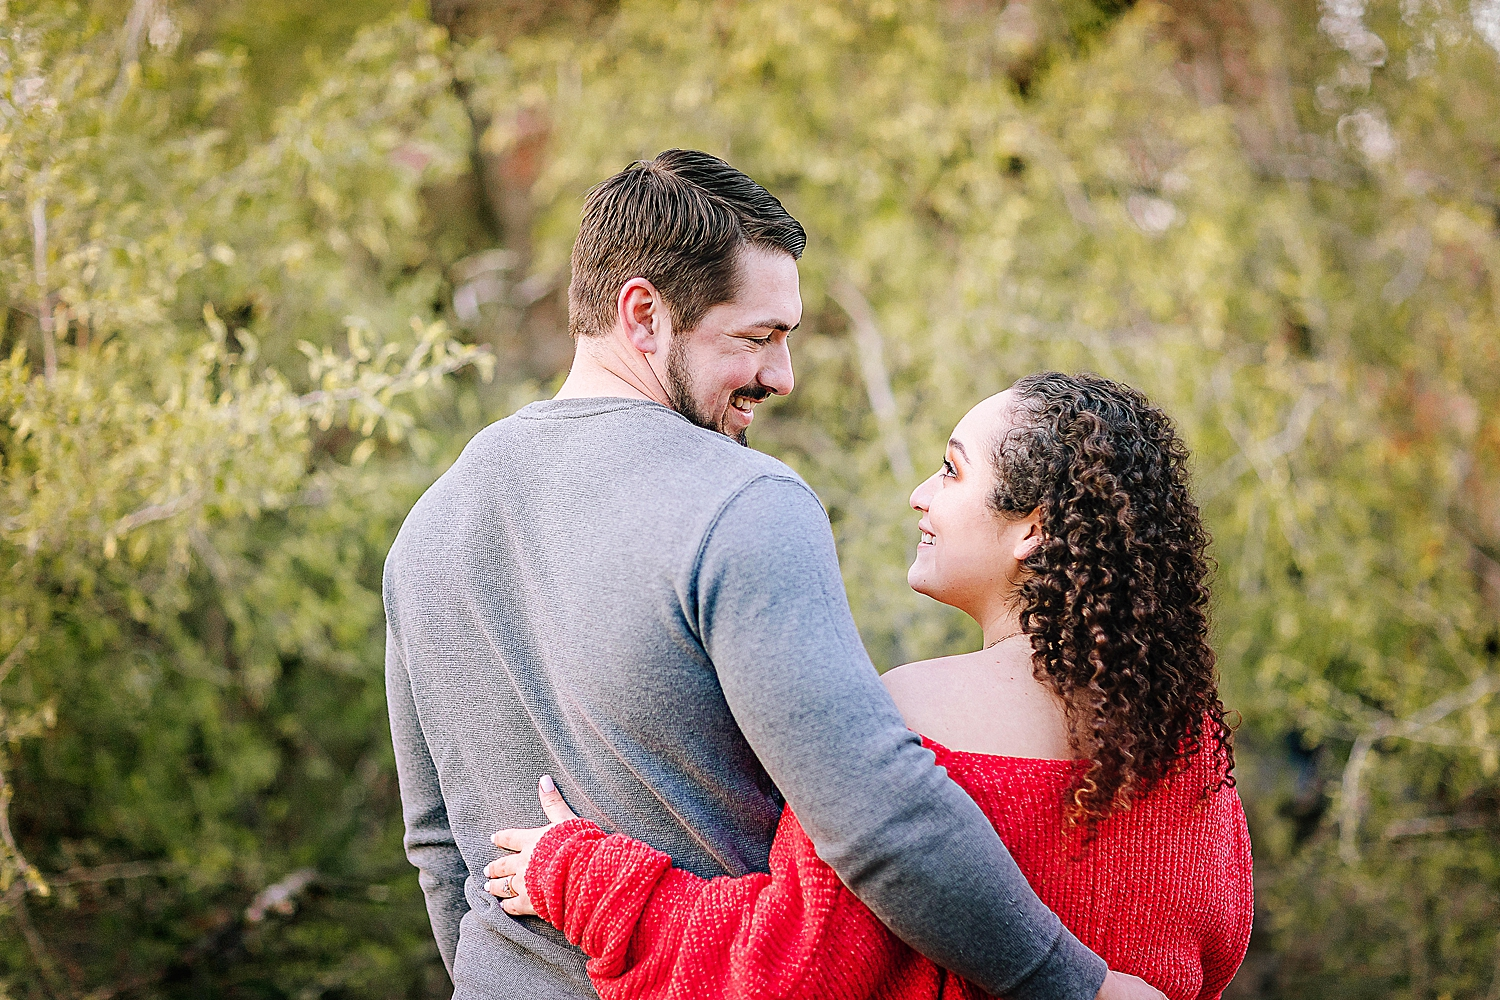 Engagement-photo-session-gruene-new-braunfels-texas-carly-barton-photography_0014.jpg